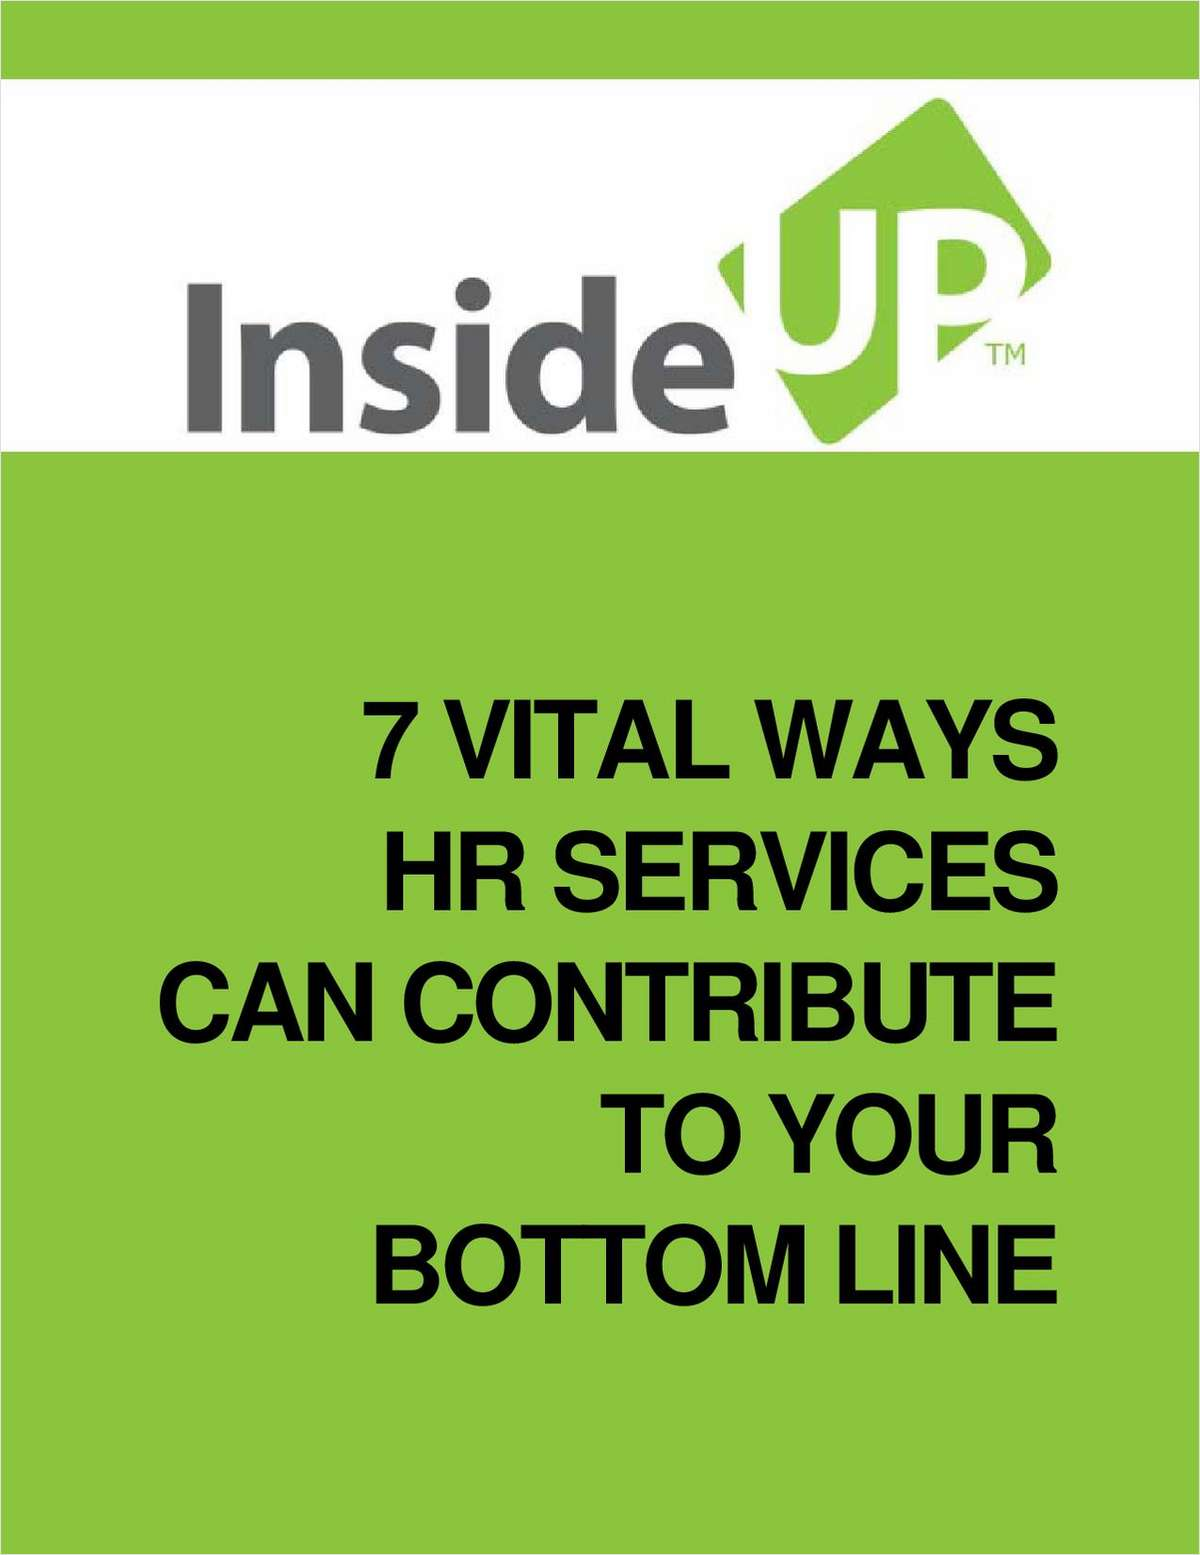 7 Vital Ways HR Services Can Contribute To Your Bottom Line